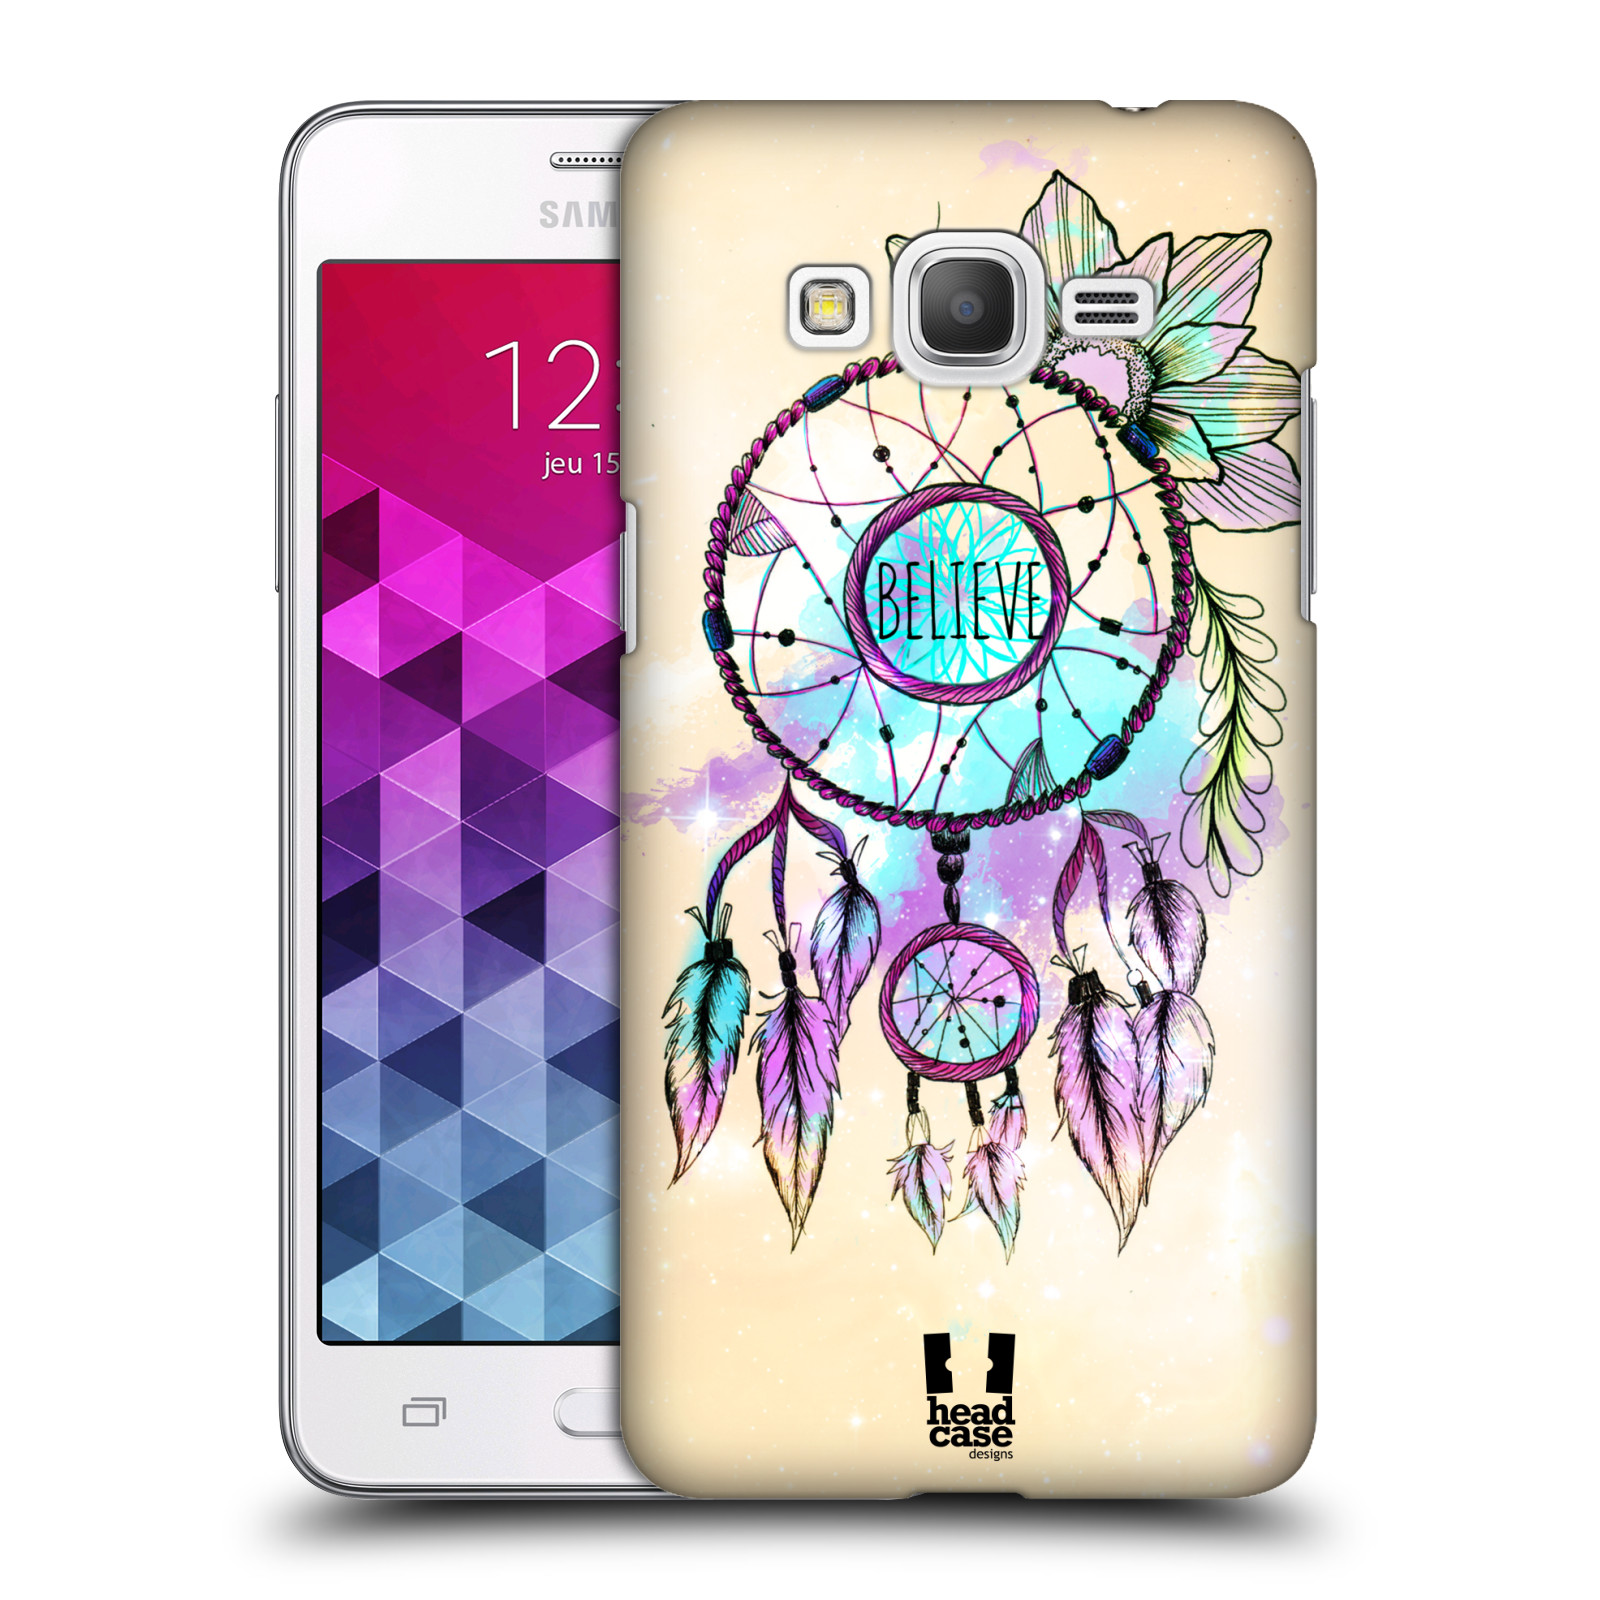 Plastové pouzdro na mobil Samsung Galaxy Grand Prime HEAD CASE MIX BELIEVE